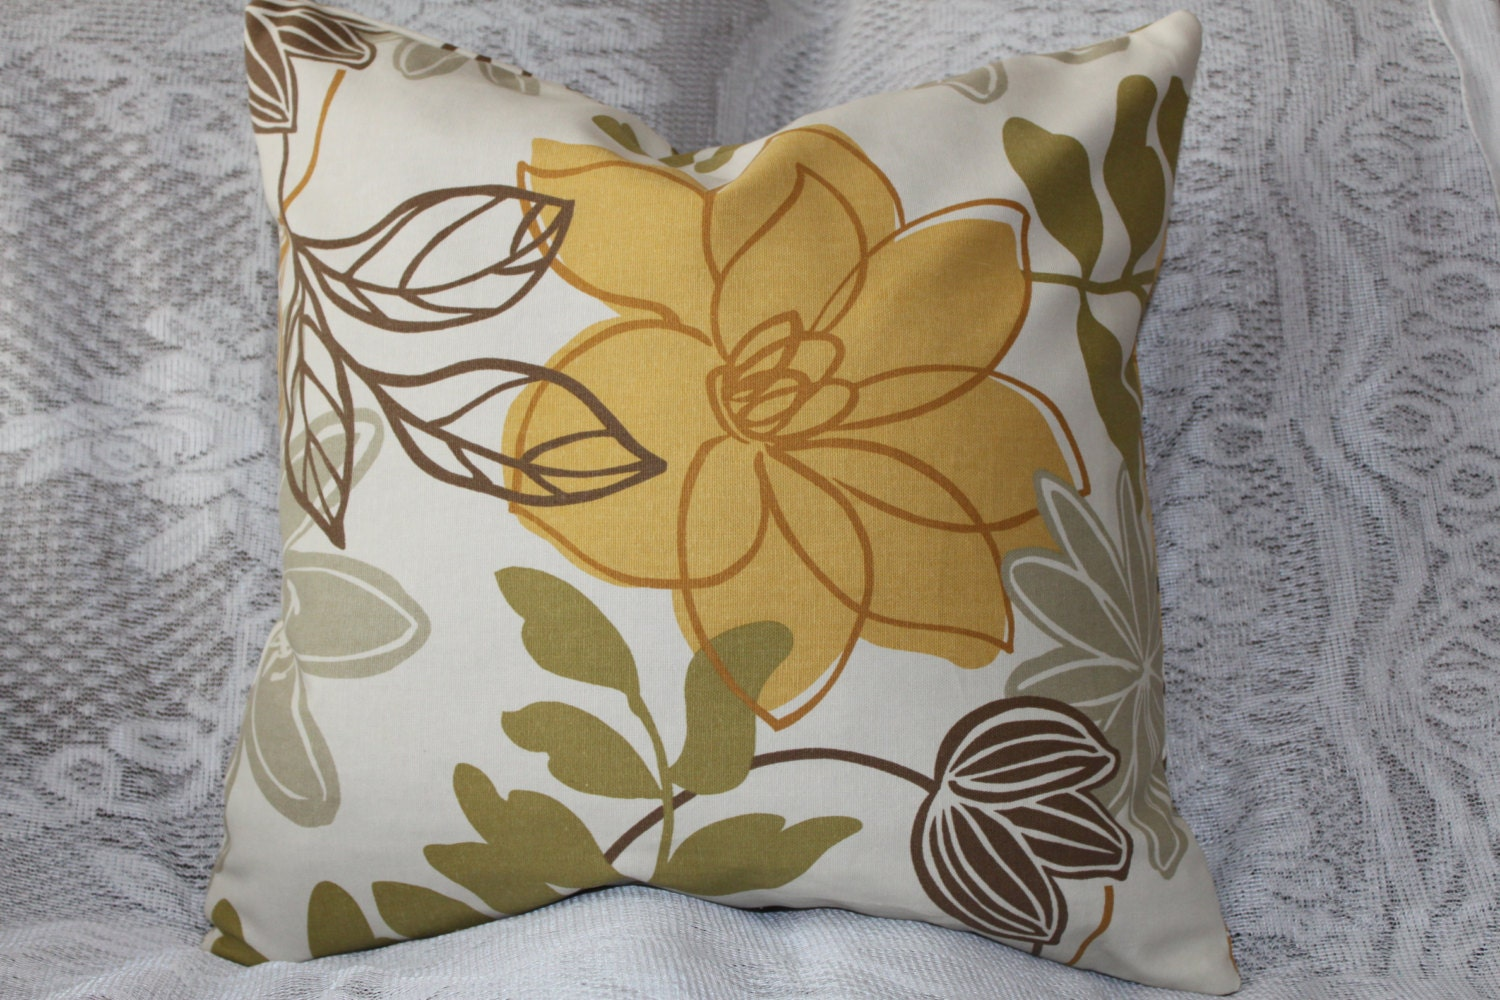 Throw Pillow Cover Pattern With Zipper : Decorative Pillow Cover Zipper Closure Throw by SewHomeDecor